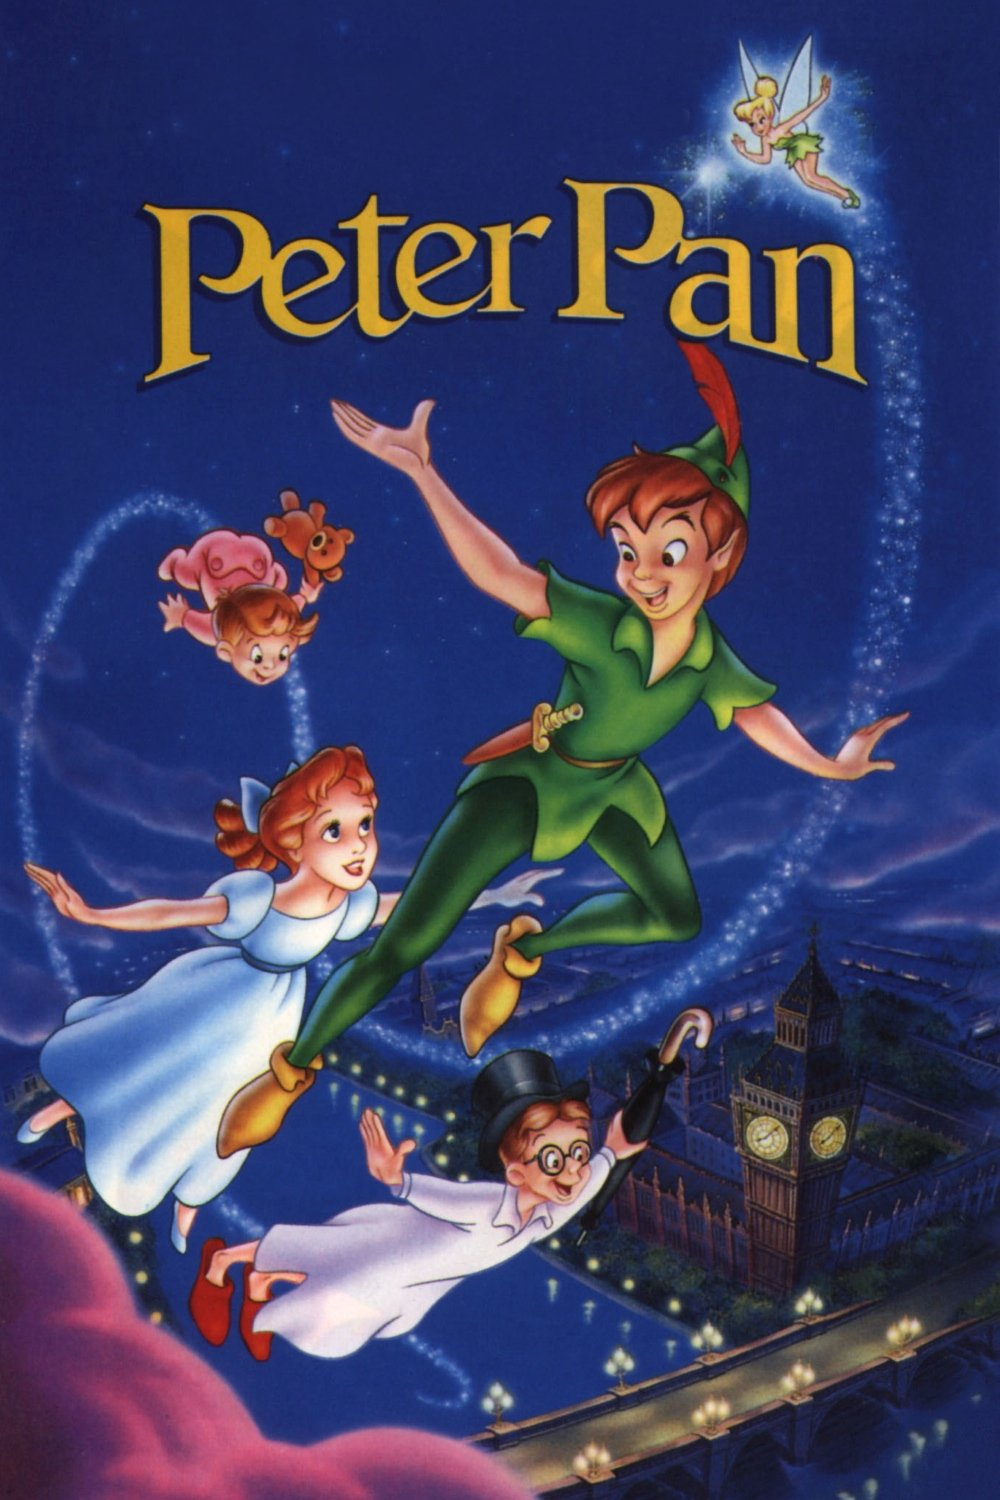 Peter-pan-disney-poster